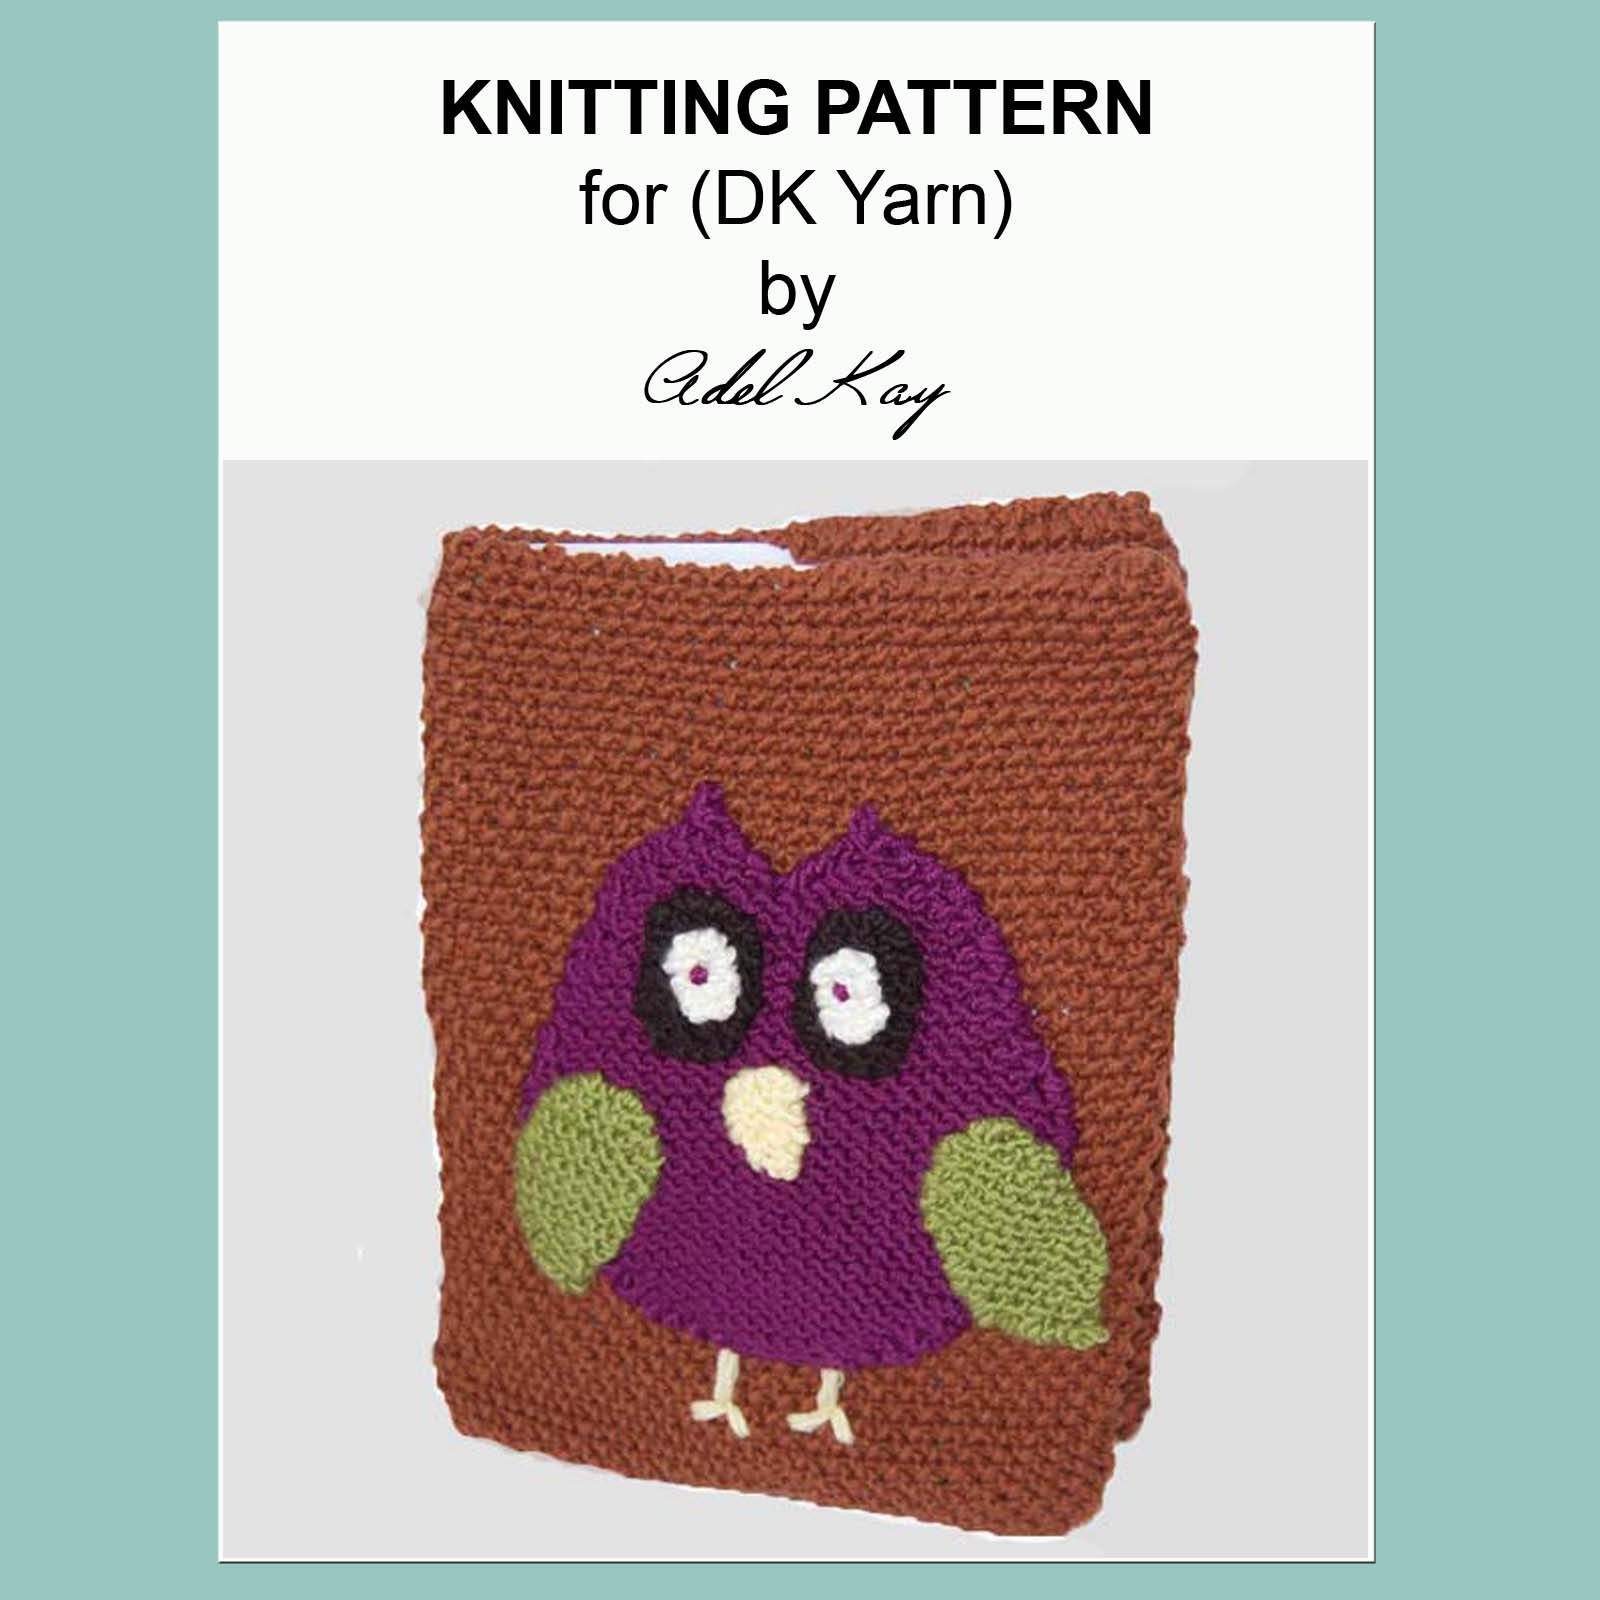 Book Cover Knitting Pattern ~ Bertie owl book cover my knitting pattern designs